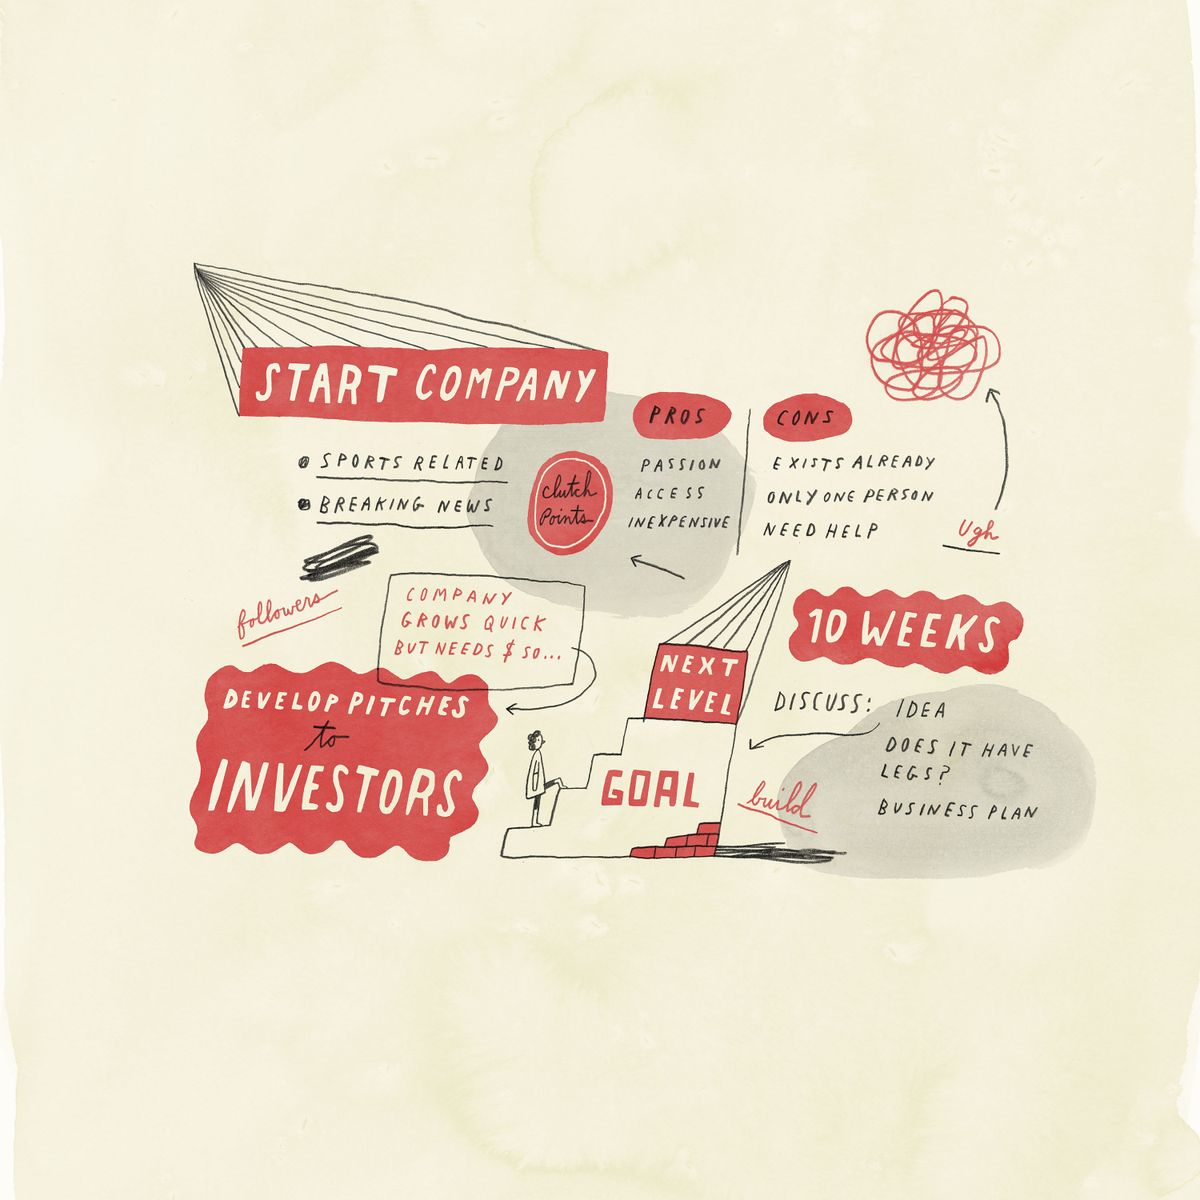 Business Boom: Start Company